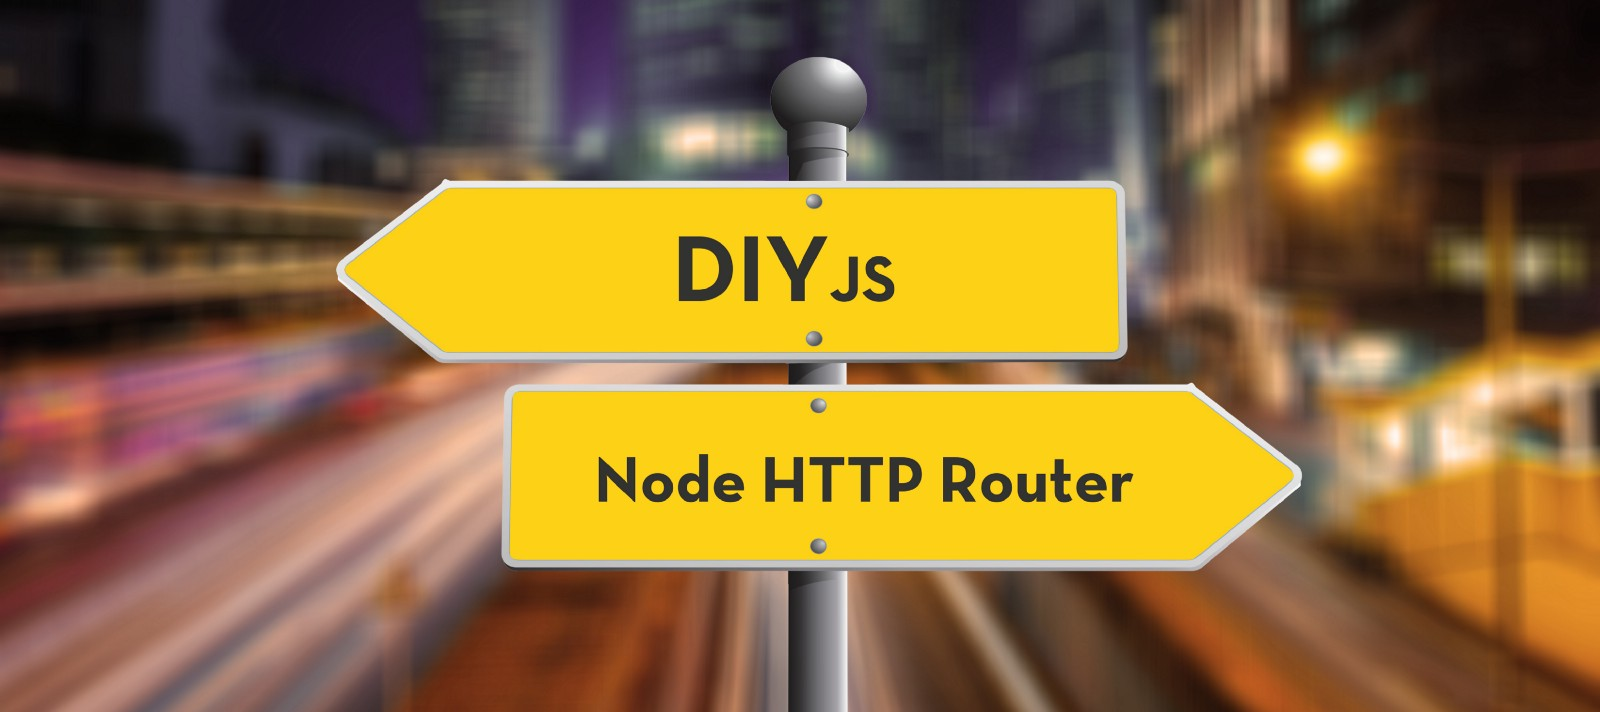 /understanding-express-js-creating-your-own-node-http-request-router-4190a9b6aad6 feature image